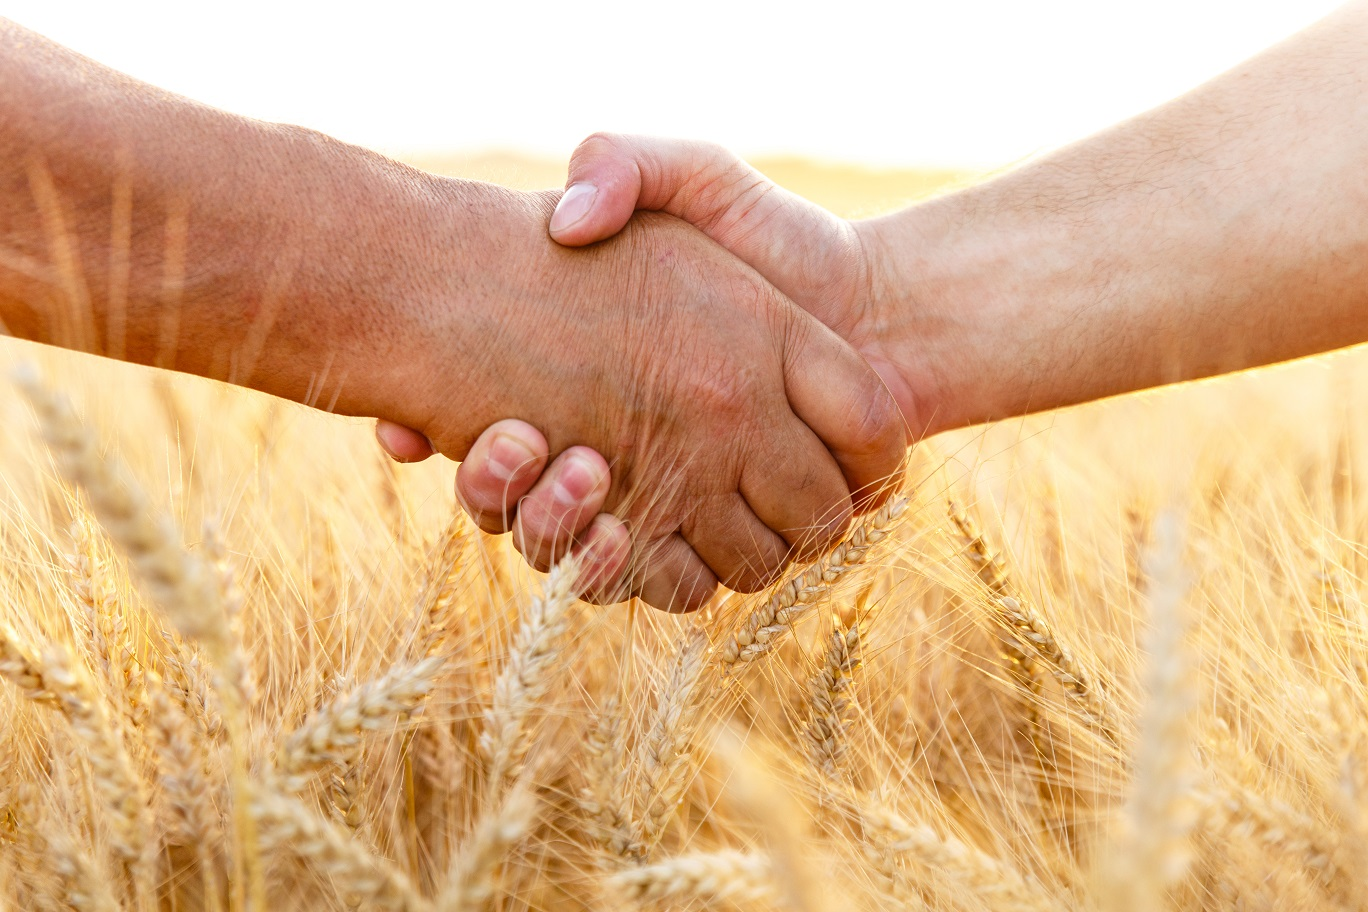 BASYS - Farmers handshake over the wheat corp, close up.